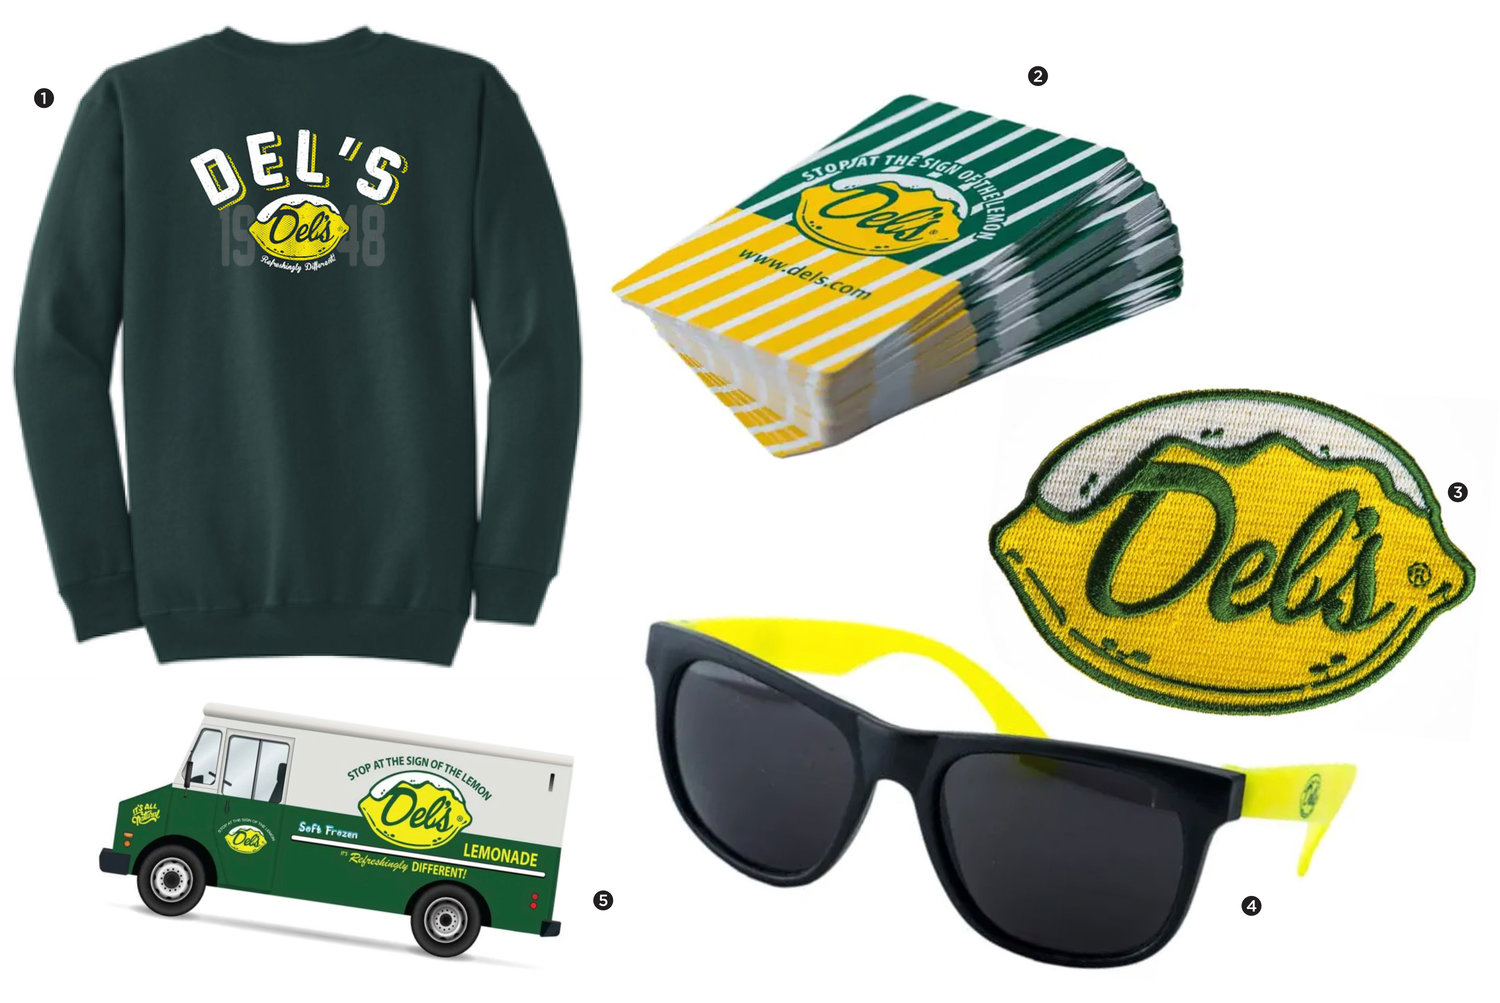 1. Del's 1948 Sweatshirt; 2. Del's Playing Cards; 3. Del's Iron On Patch; 4. Del's Sunglasses; 5. Del's Lemonade Truck Sticker